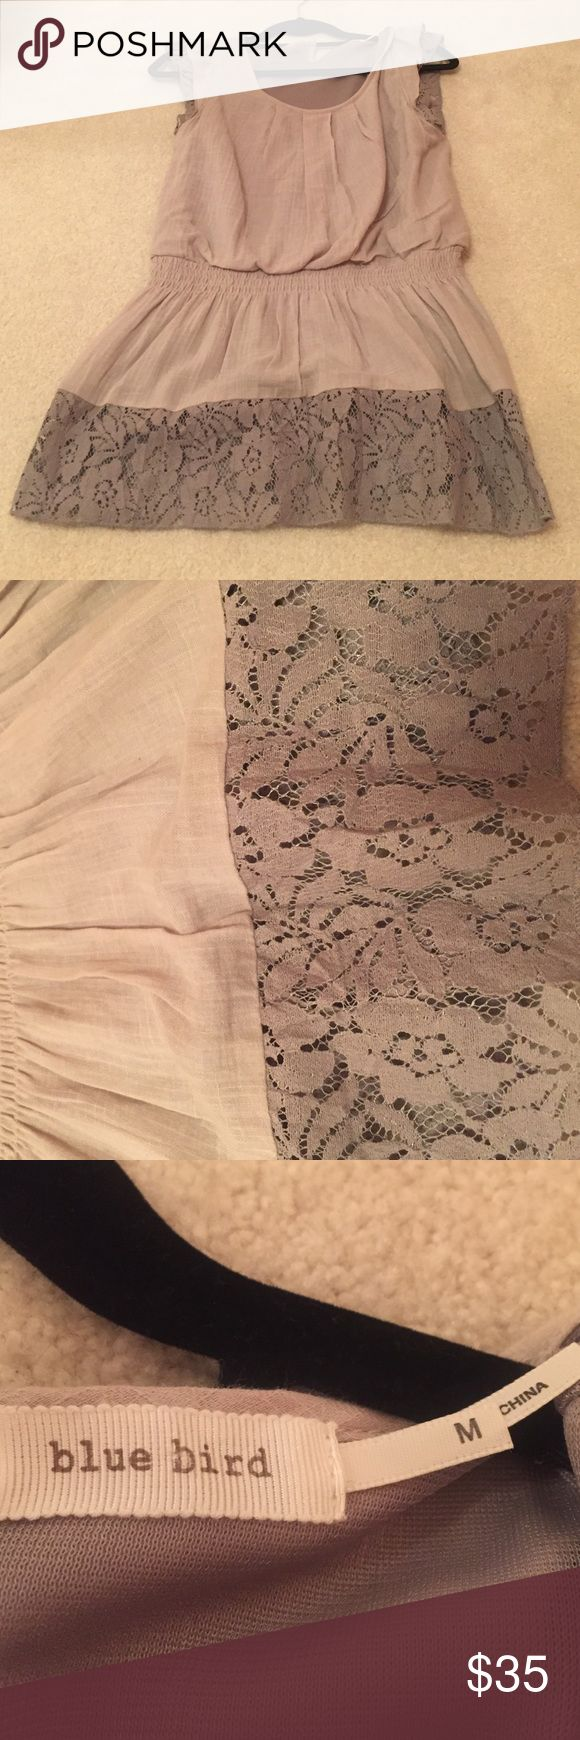 Anthropologie sleeveless top! Lace on bottom and around arm holes! Blue Bird Anthropologie brand. Soft and super cute! Blue Bird Tops